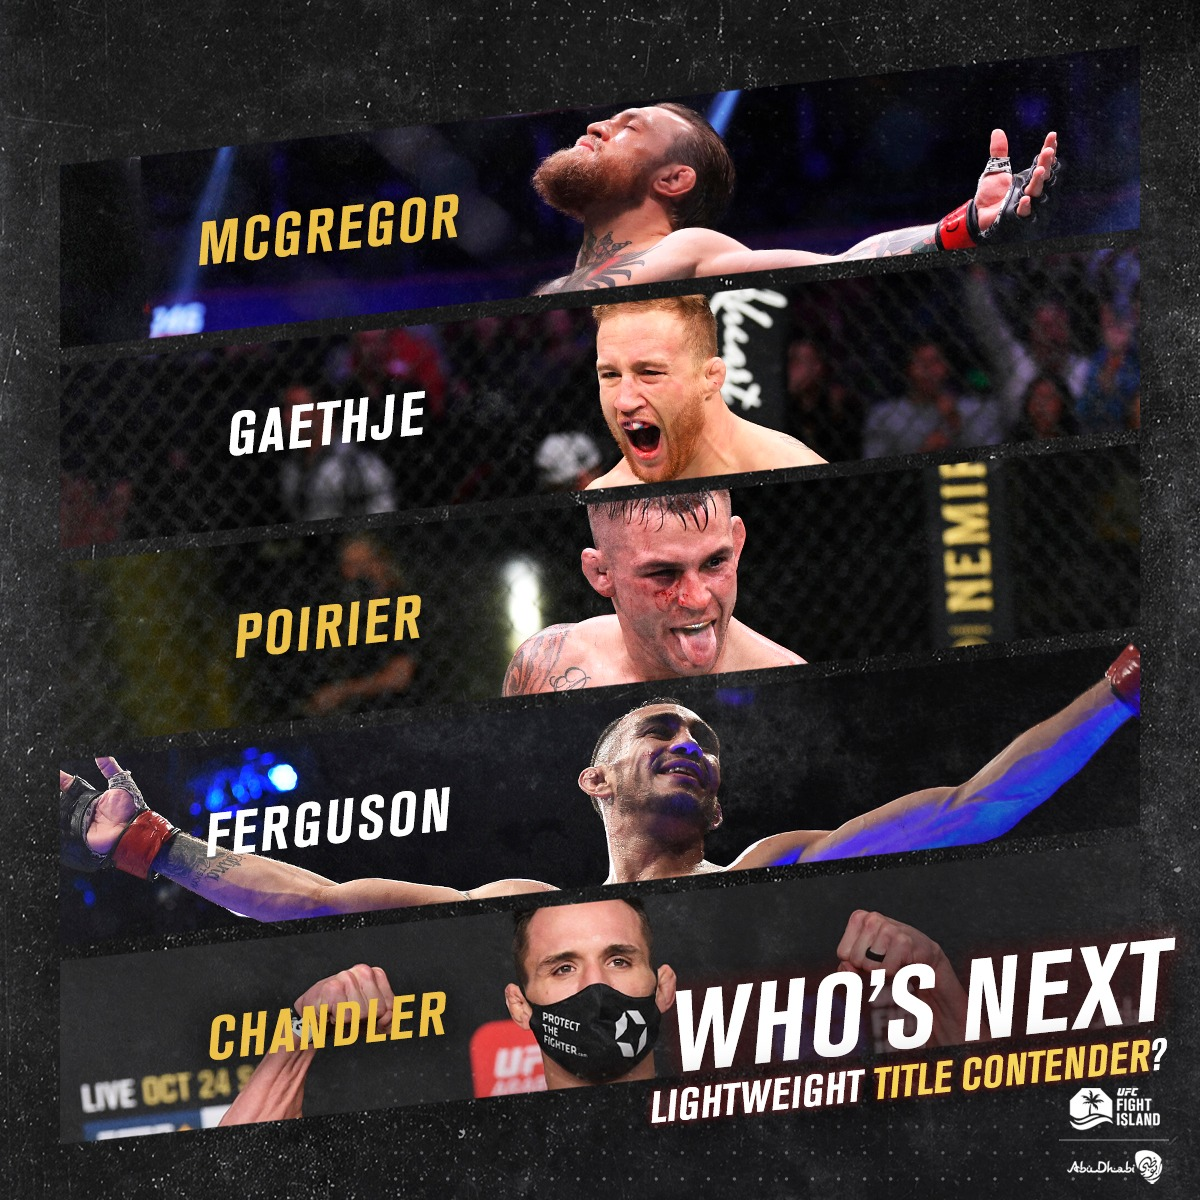 Who will be the next lightweight title contender❓ https://t.co/S0nb06U4qX